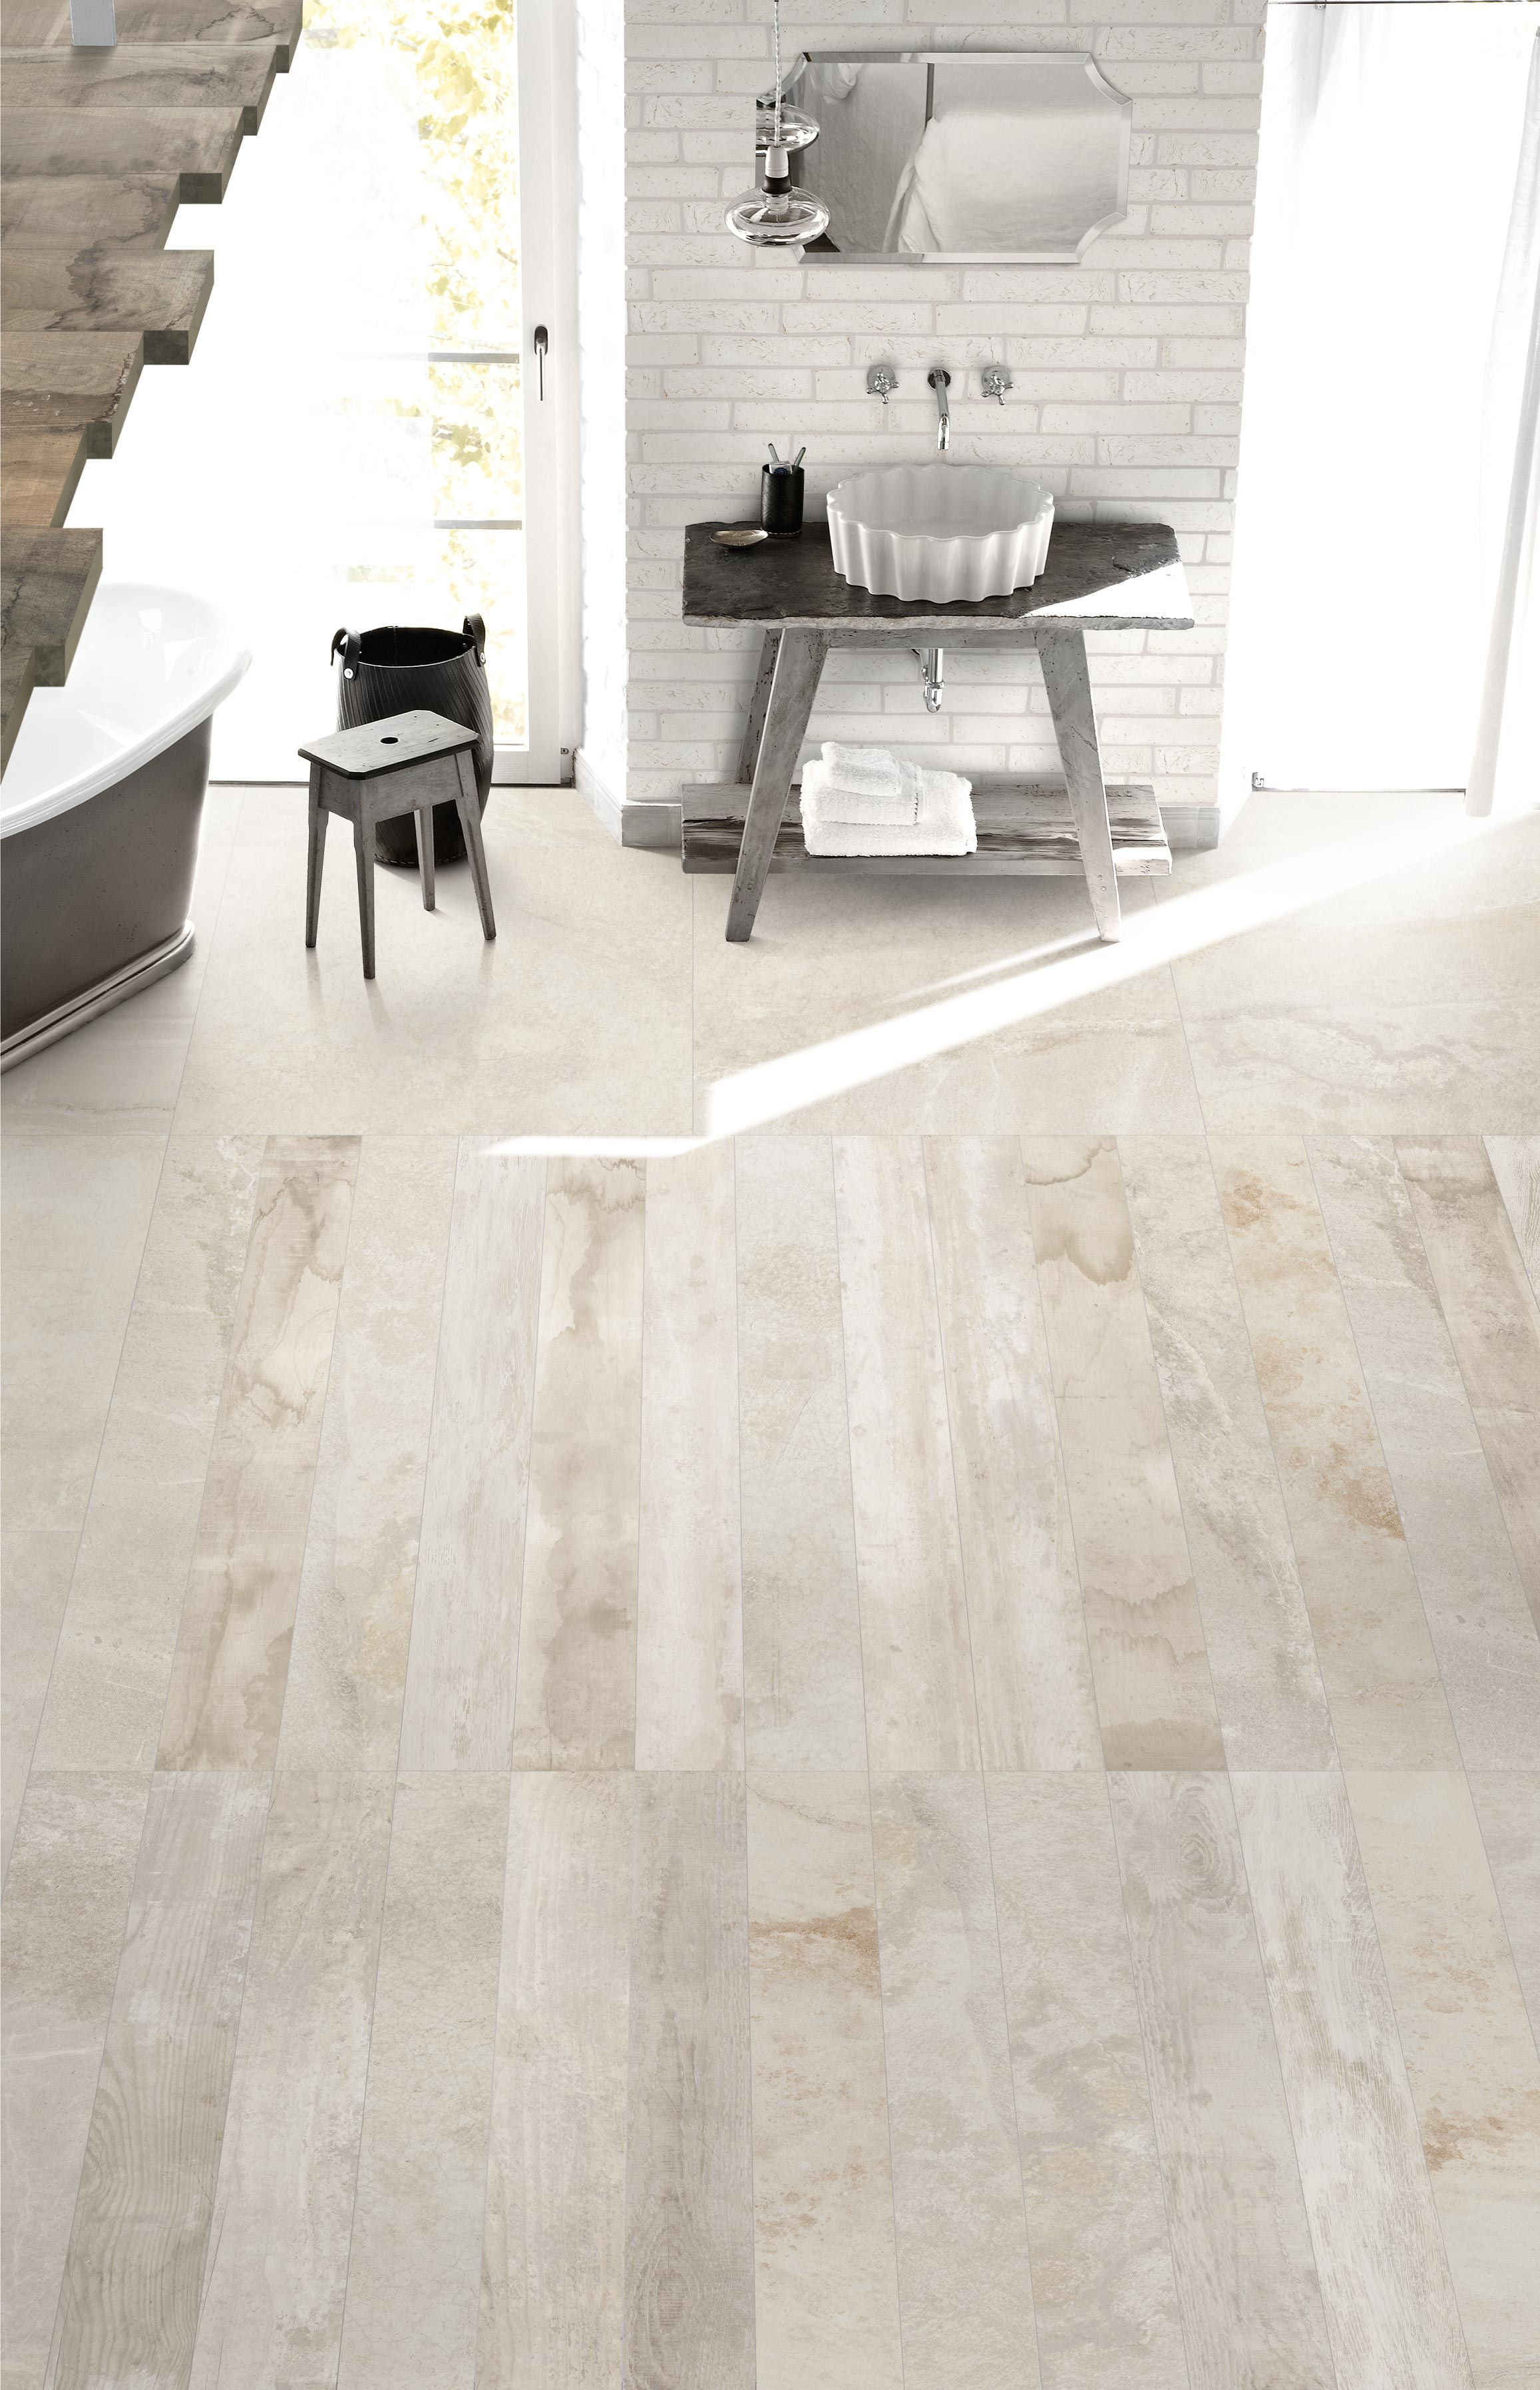 Inessence porcelain floor tile in sabbia mix 6x48 httpwww inessence porcelain floor tile in sabbia mix 6x48 httppentalonline dailygadgetfo Image collections